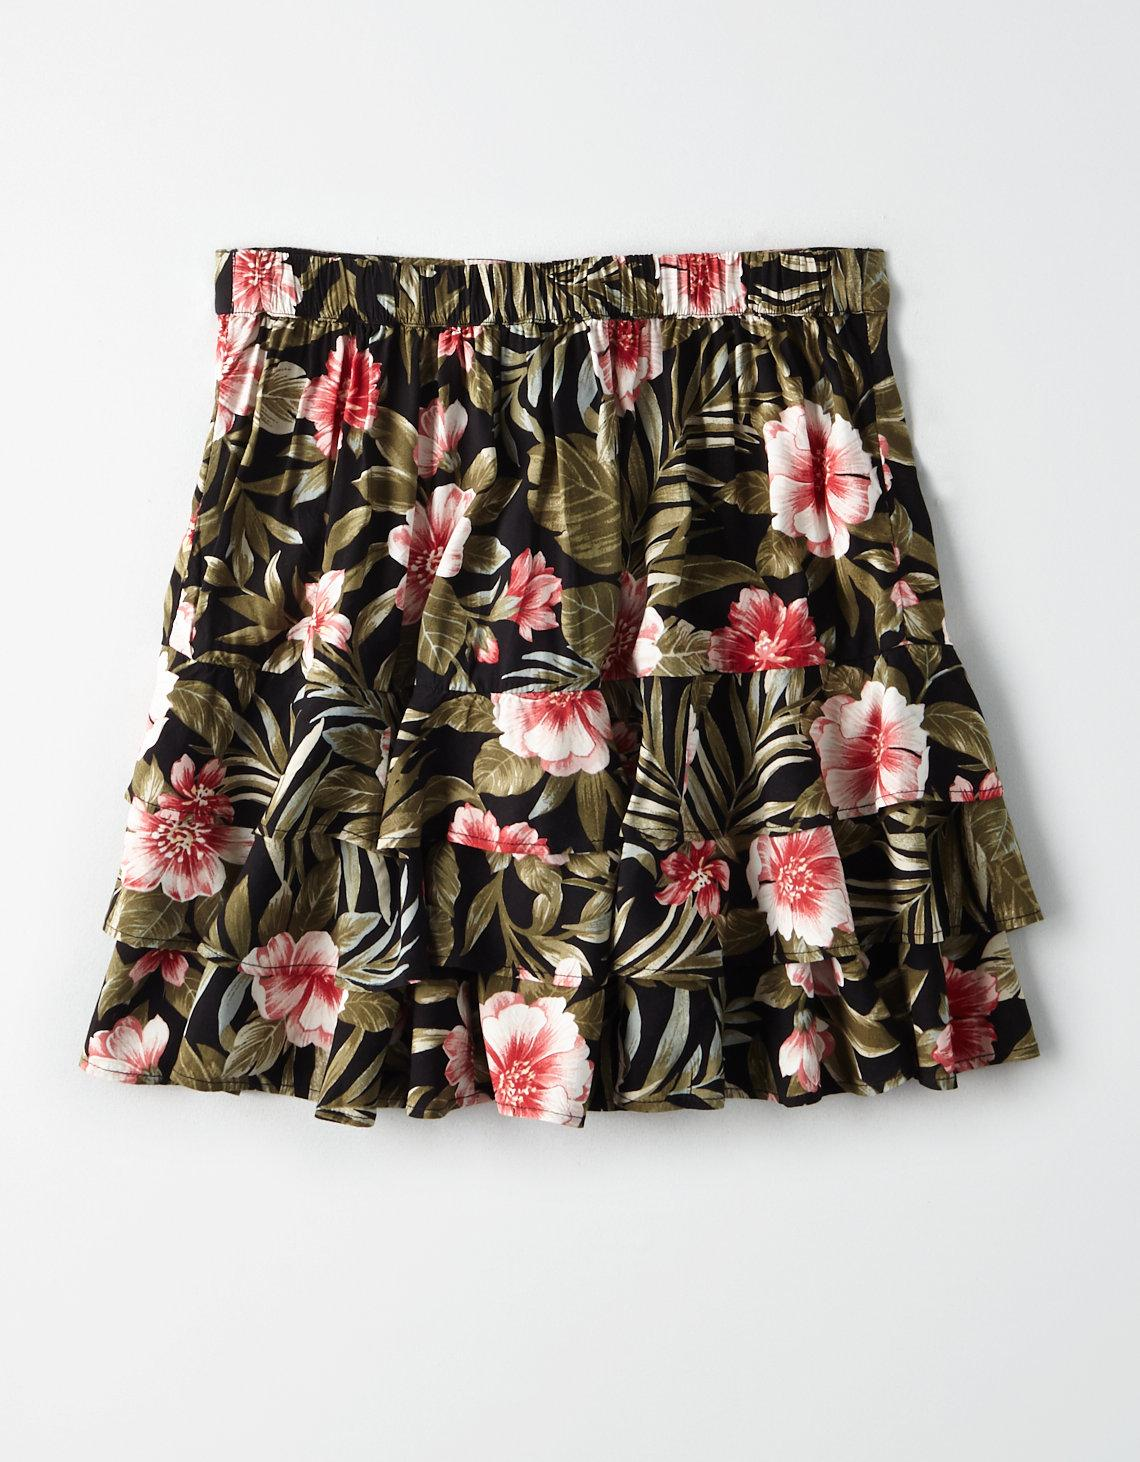 e91731f25 Lyst - American Eagle Ae High-waisted Tropical Tiered Mini Skirt in ...